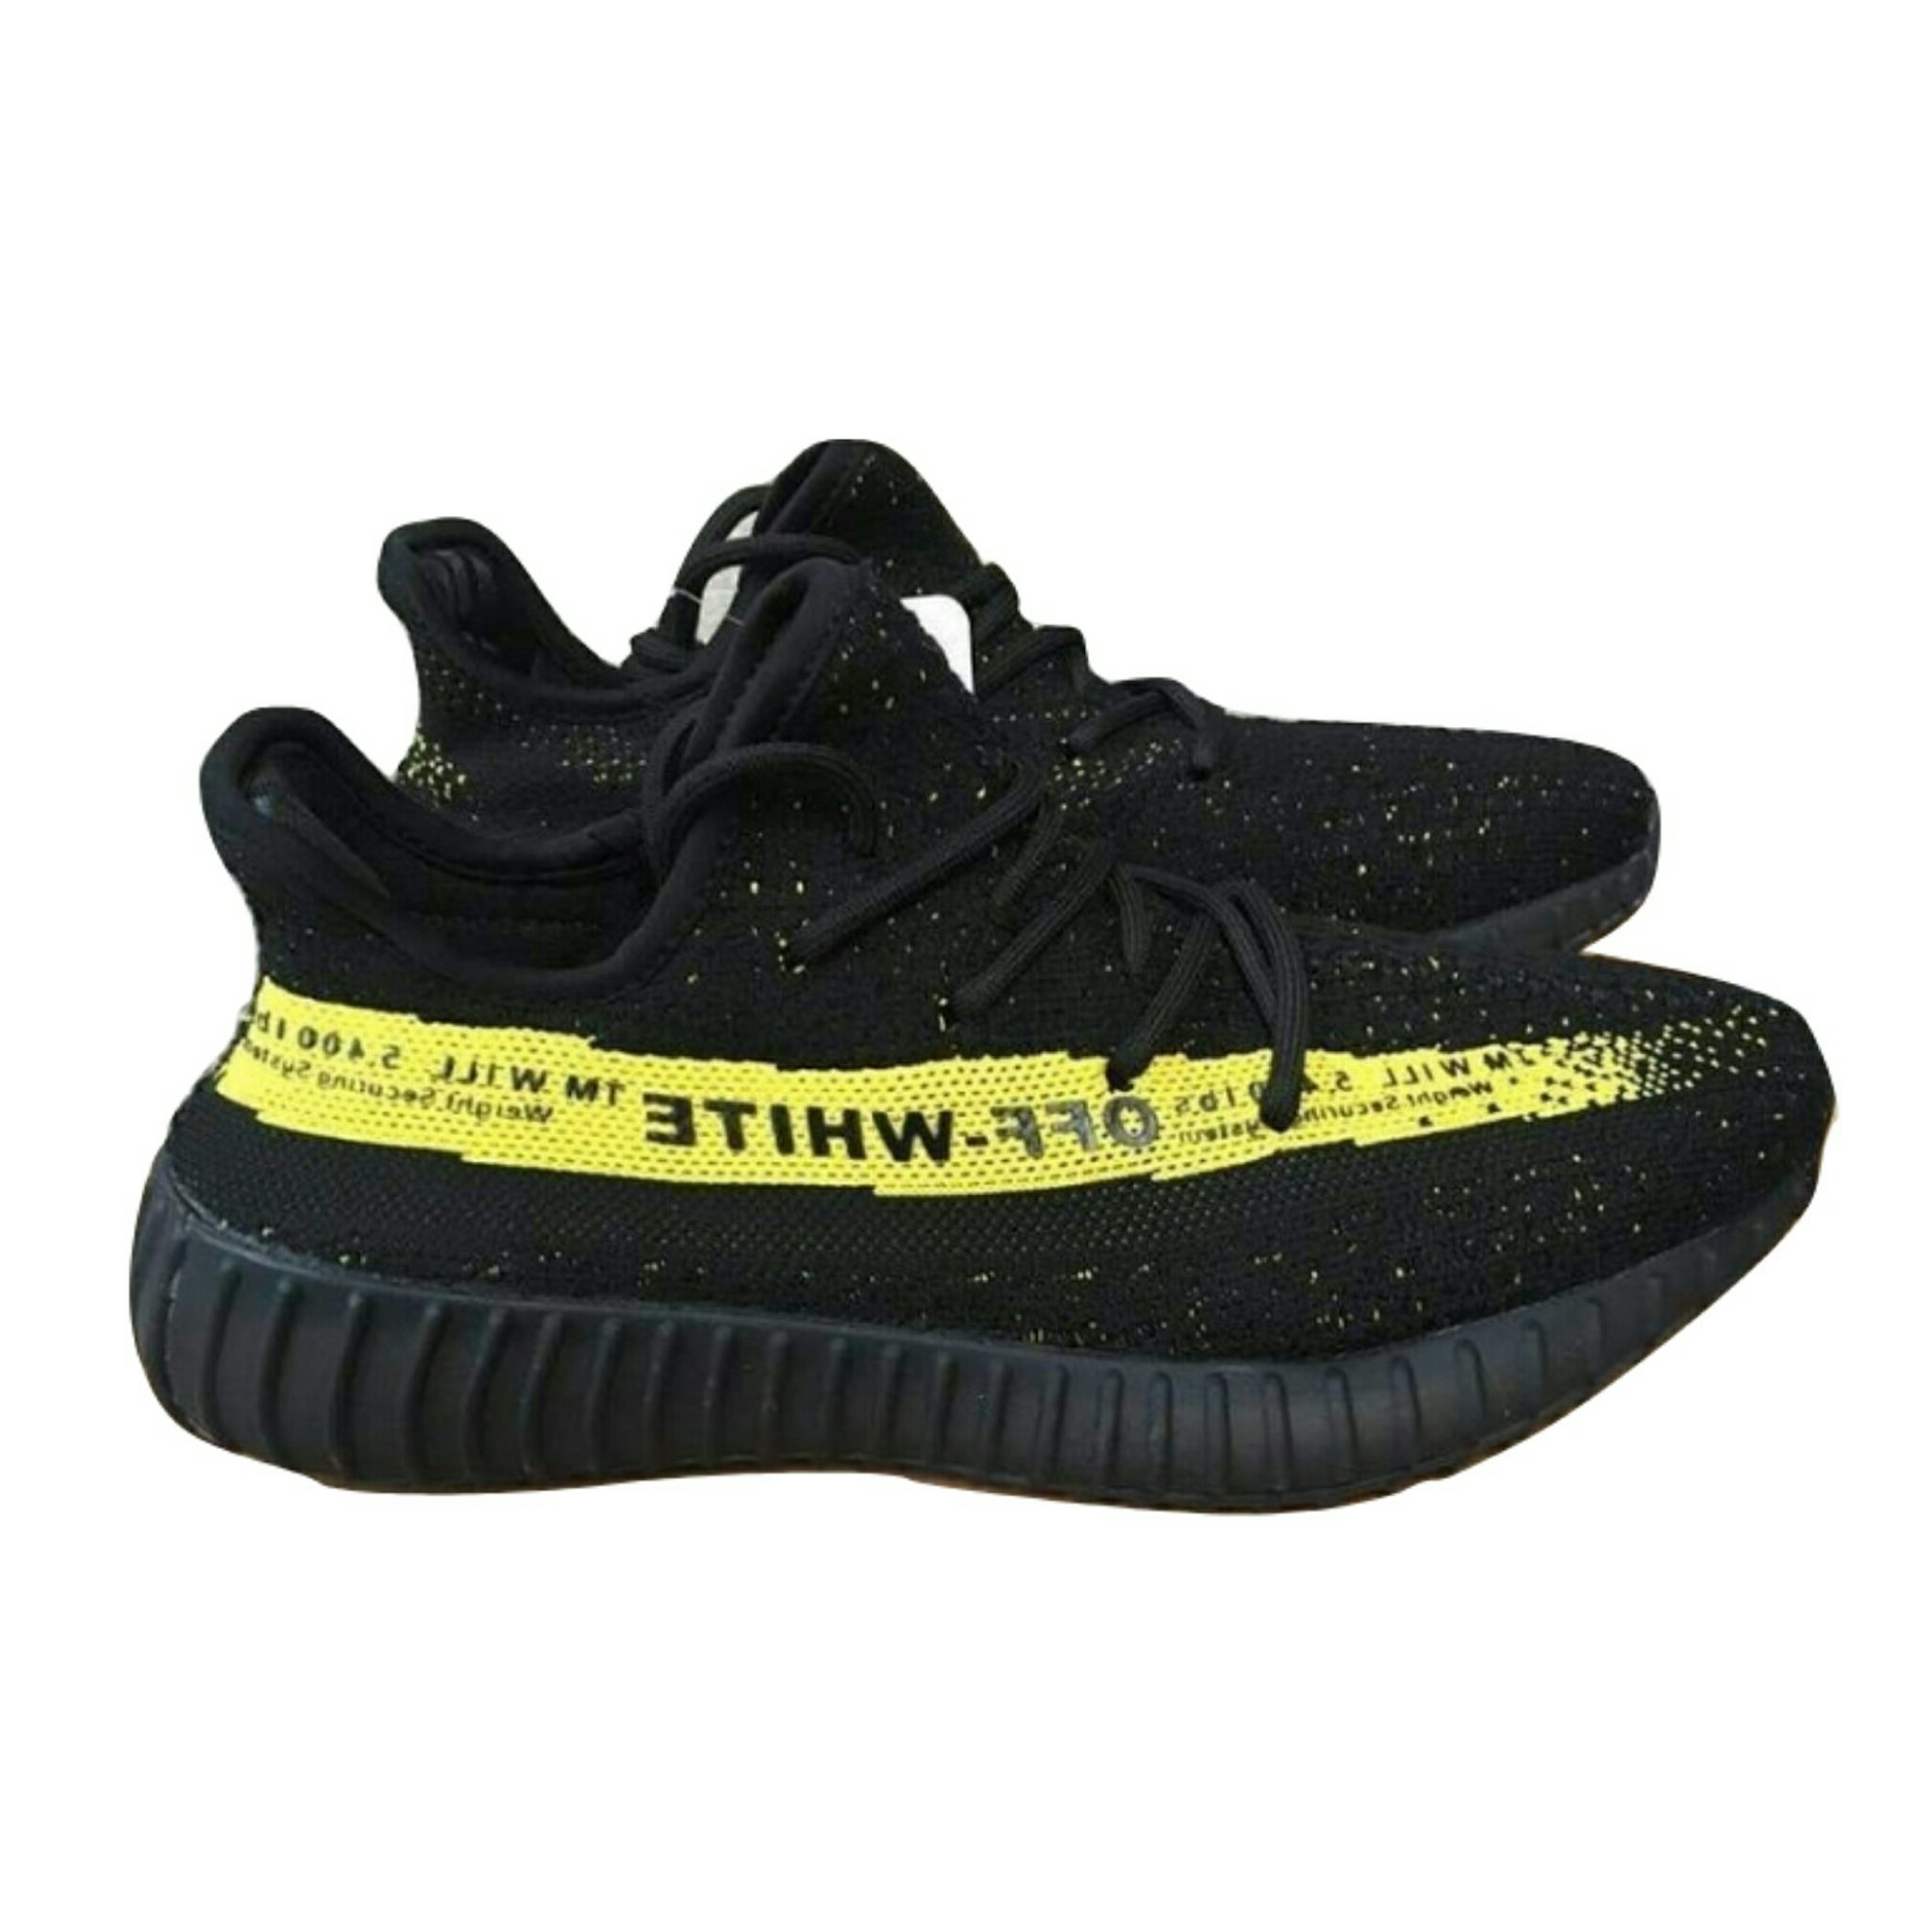 """the latest 53a08 c5df8 Adidas Yeezy Boost 350 """"OFF-WHITE"""""""